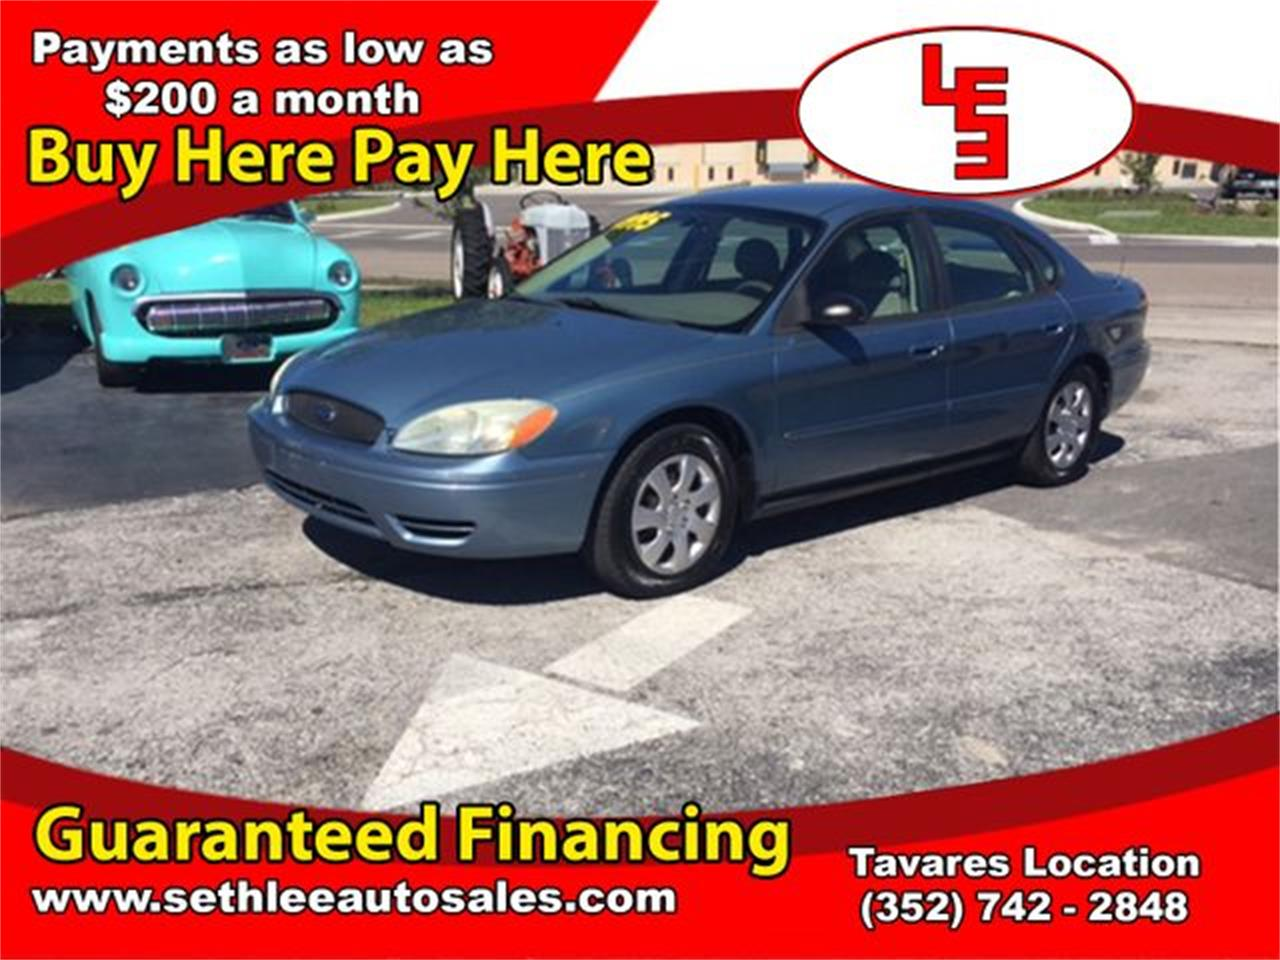 Large Picture of 2007 Ford Taurus located in Tavares Florida - $3,695.00 Offered by Seth Lee Auto Sales - M75N